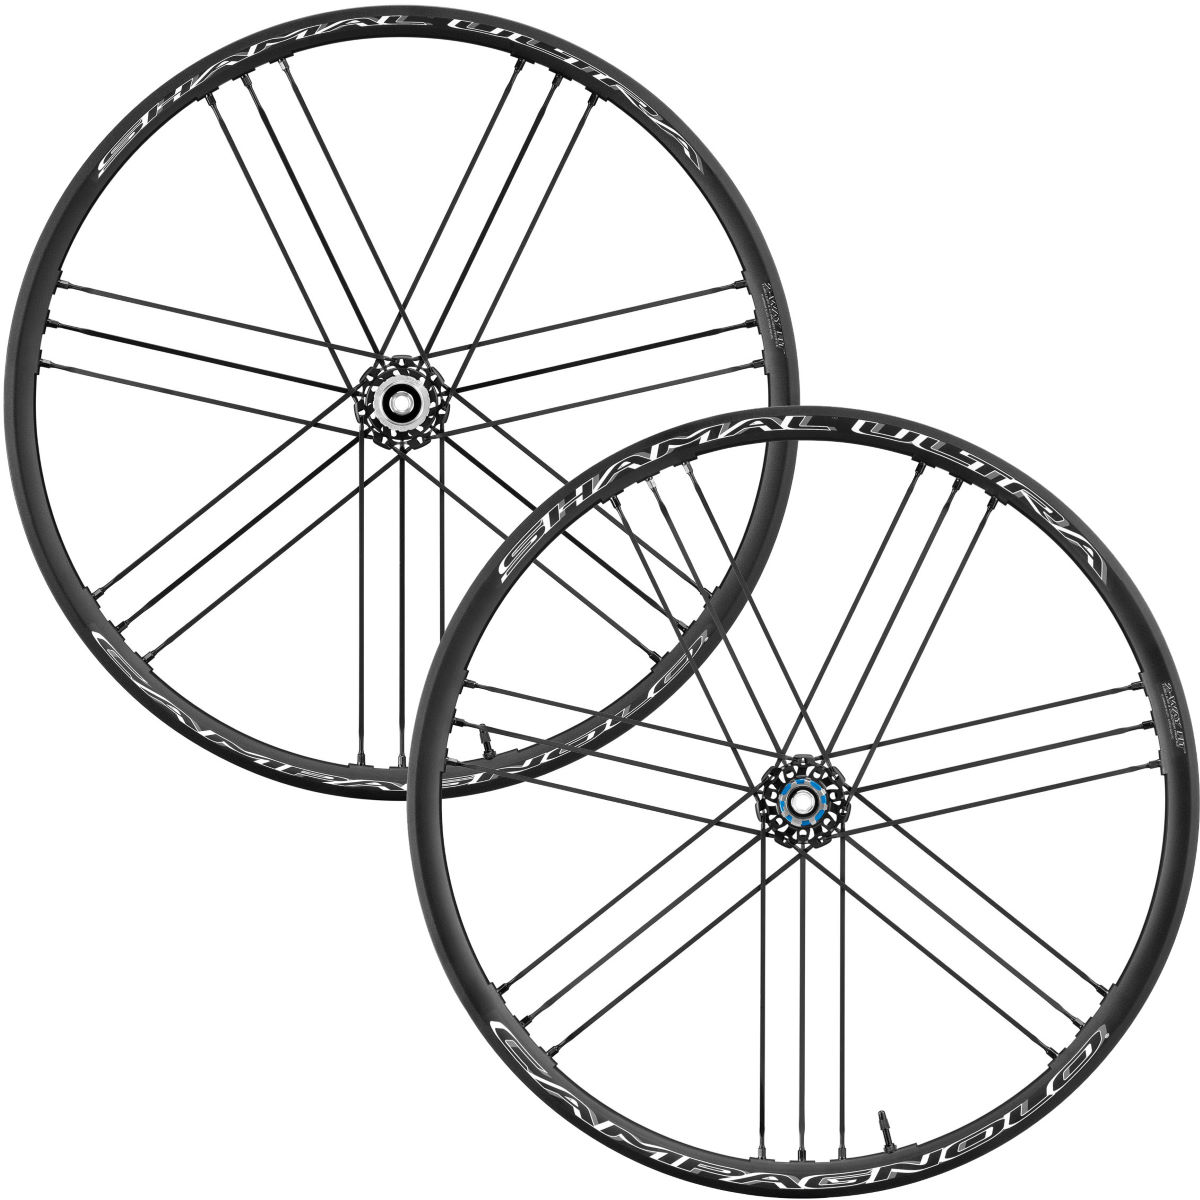 Campagnolo Shamal Ultra DB 2-Way Fit Road Wheelset (2019) - Wheel sets